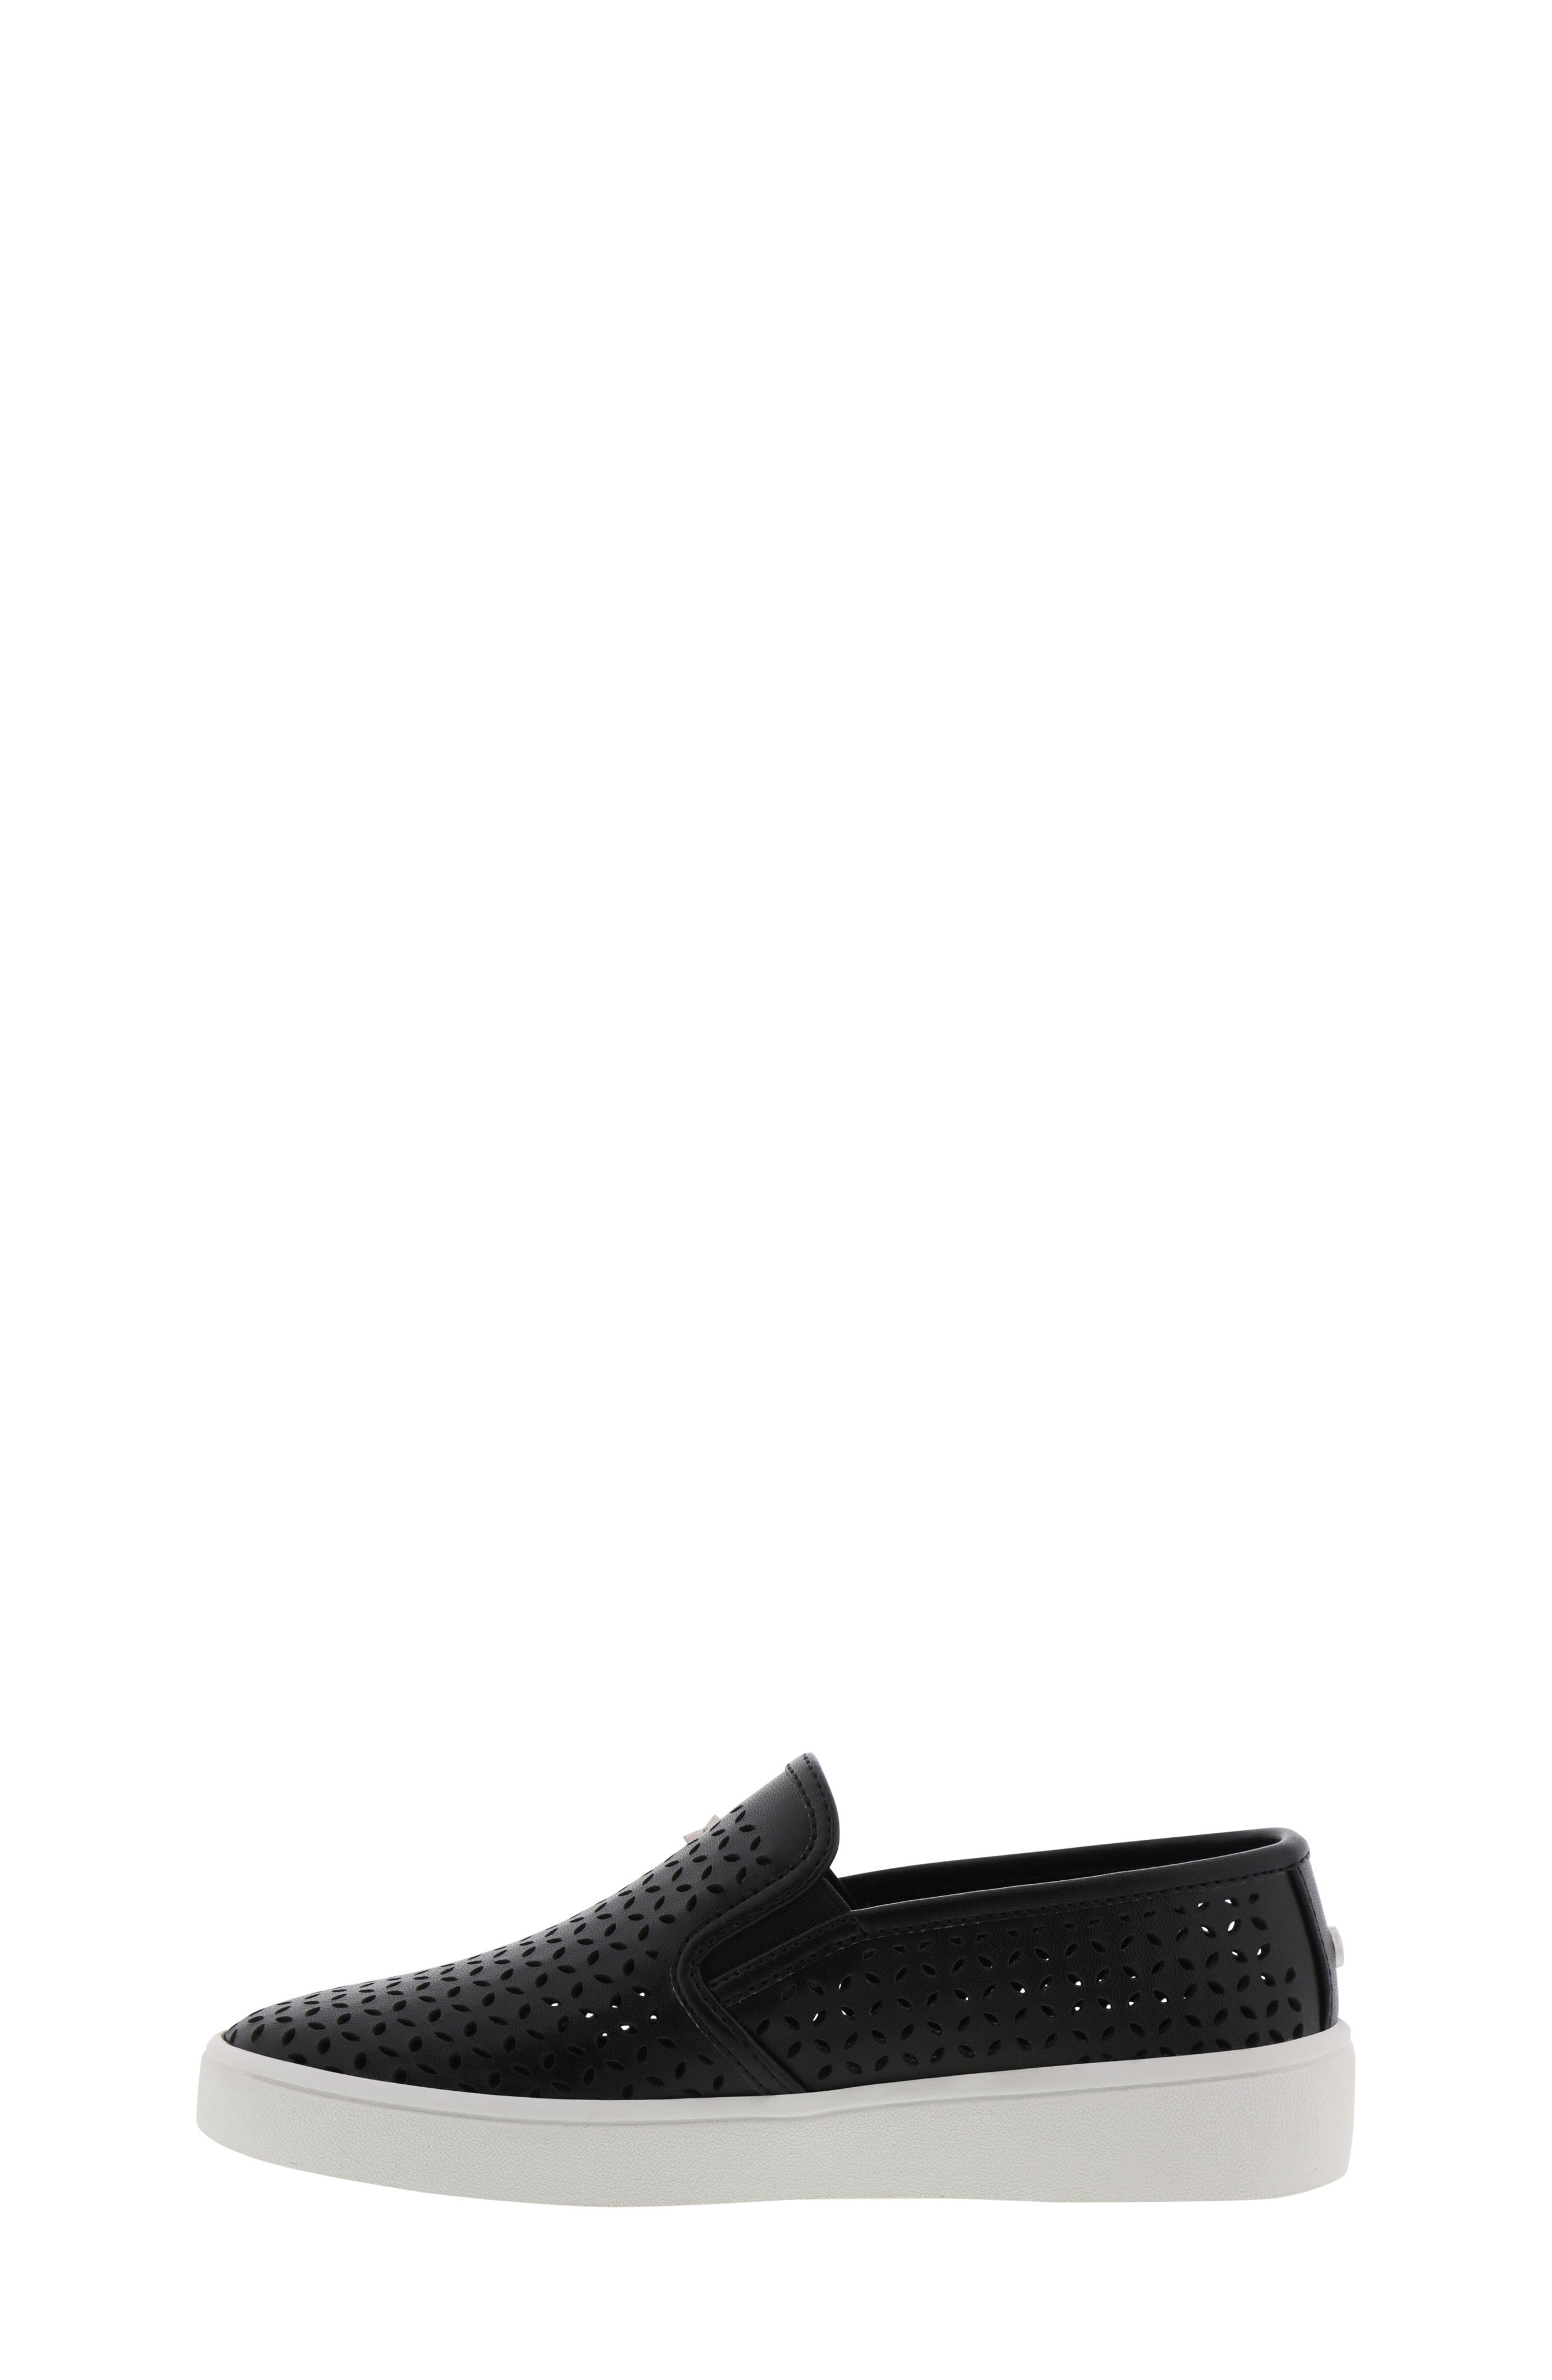 MICHAEL MICHAEL KORS, Jem Olivia Perforated Slip-On Sneaker, Alternate thumbnail 3, color, BLACK